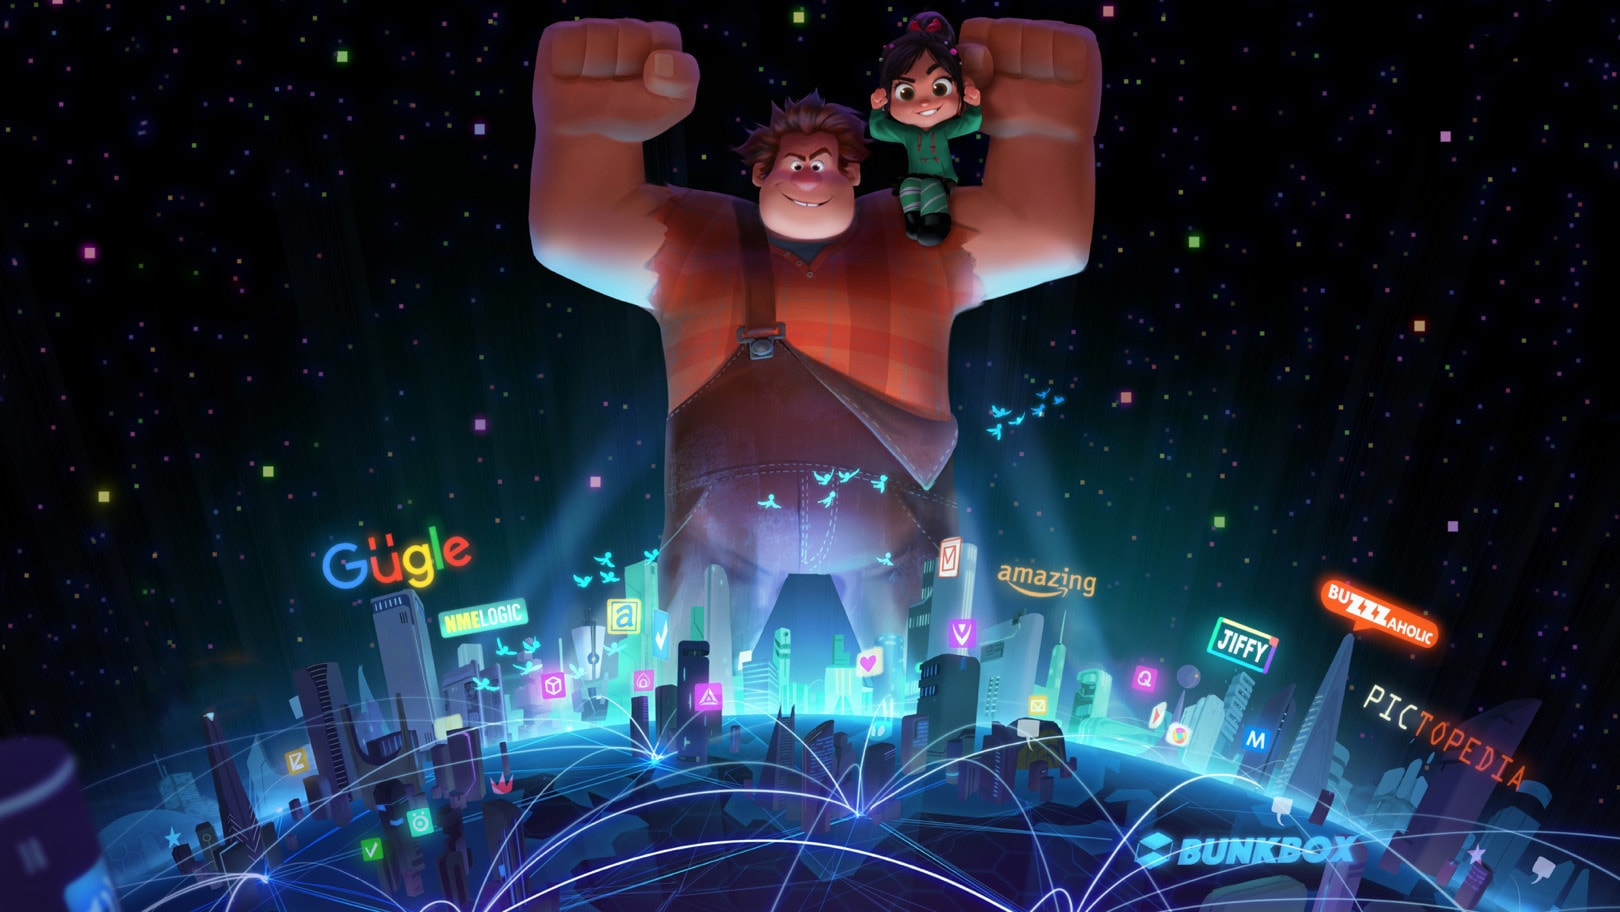 Ralph Breaks the Internet showcase image 4